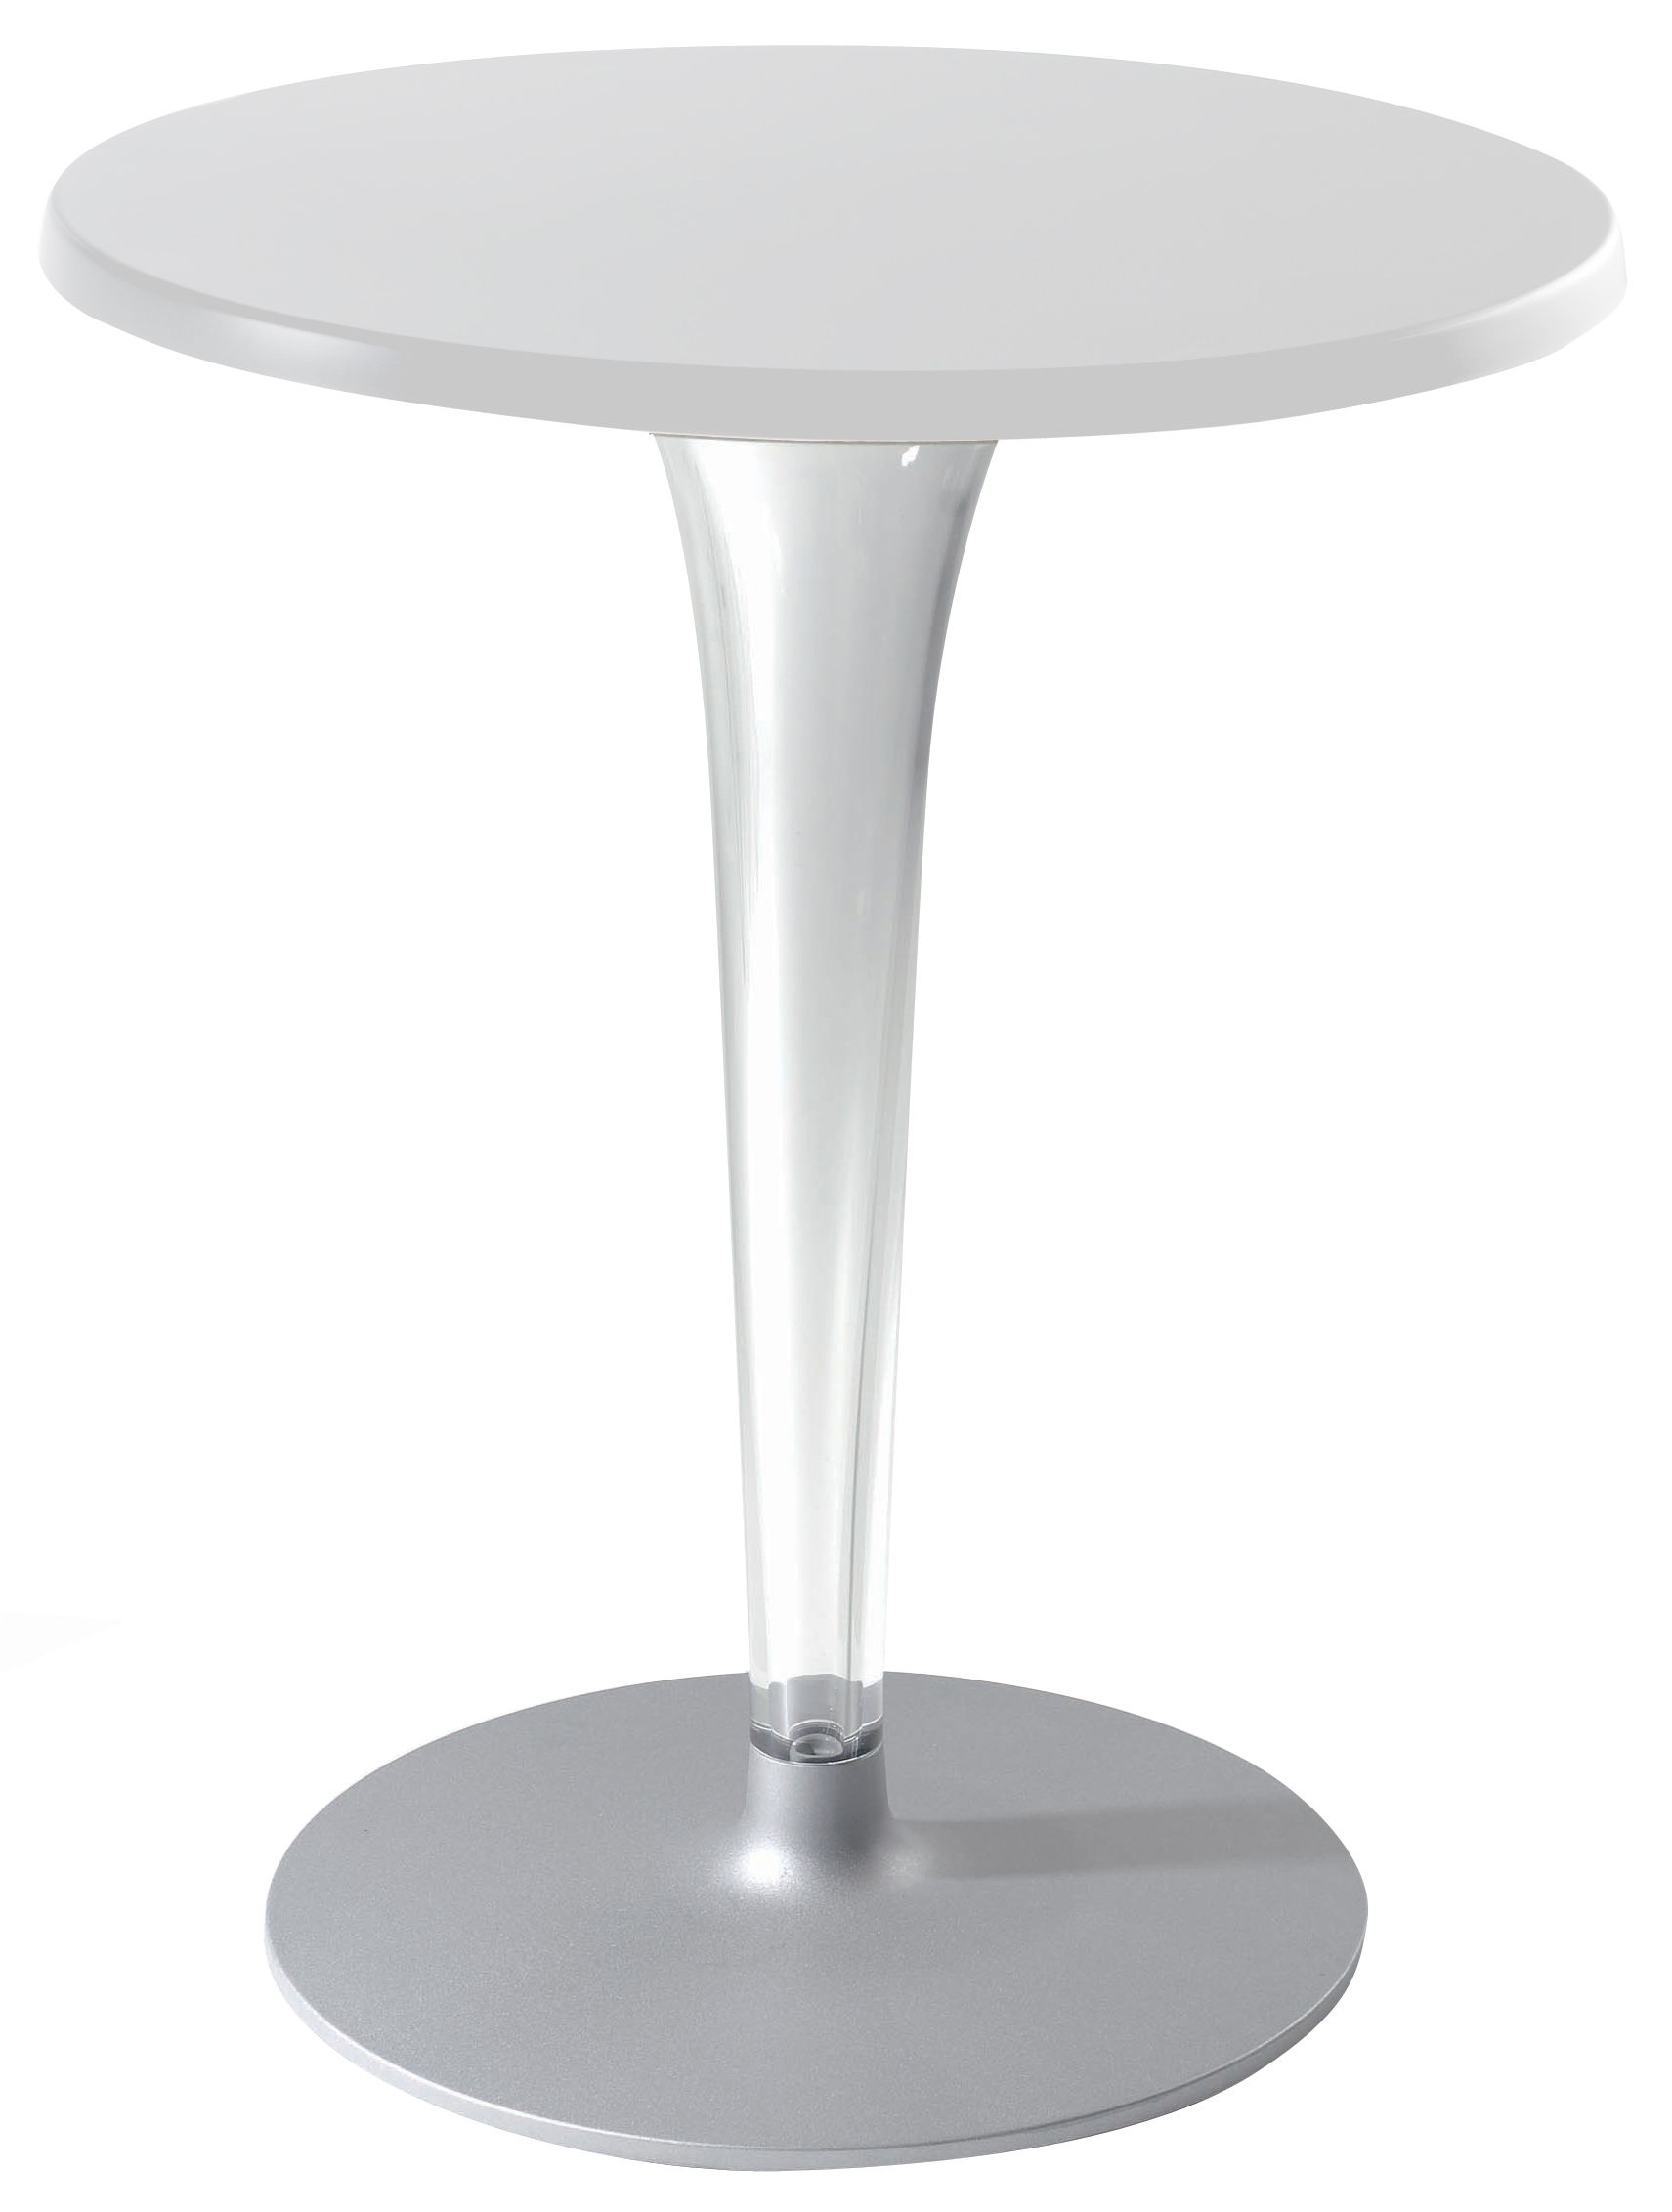 Outdoor - Garden Tables - Top Top - Contract outdoor Round table - Round table top by Kartell - White/ round leg - Melamine, PMMA, Varnished aluminium